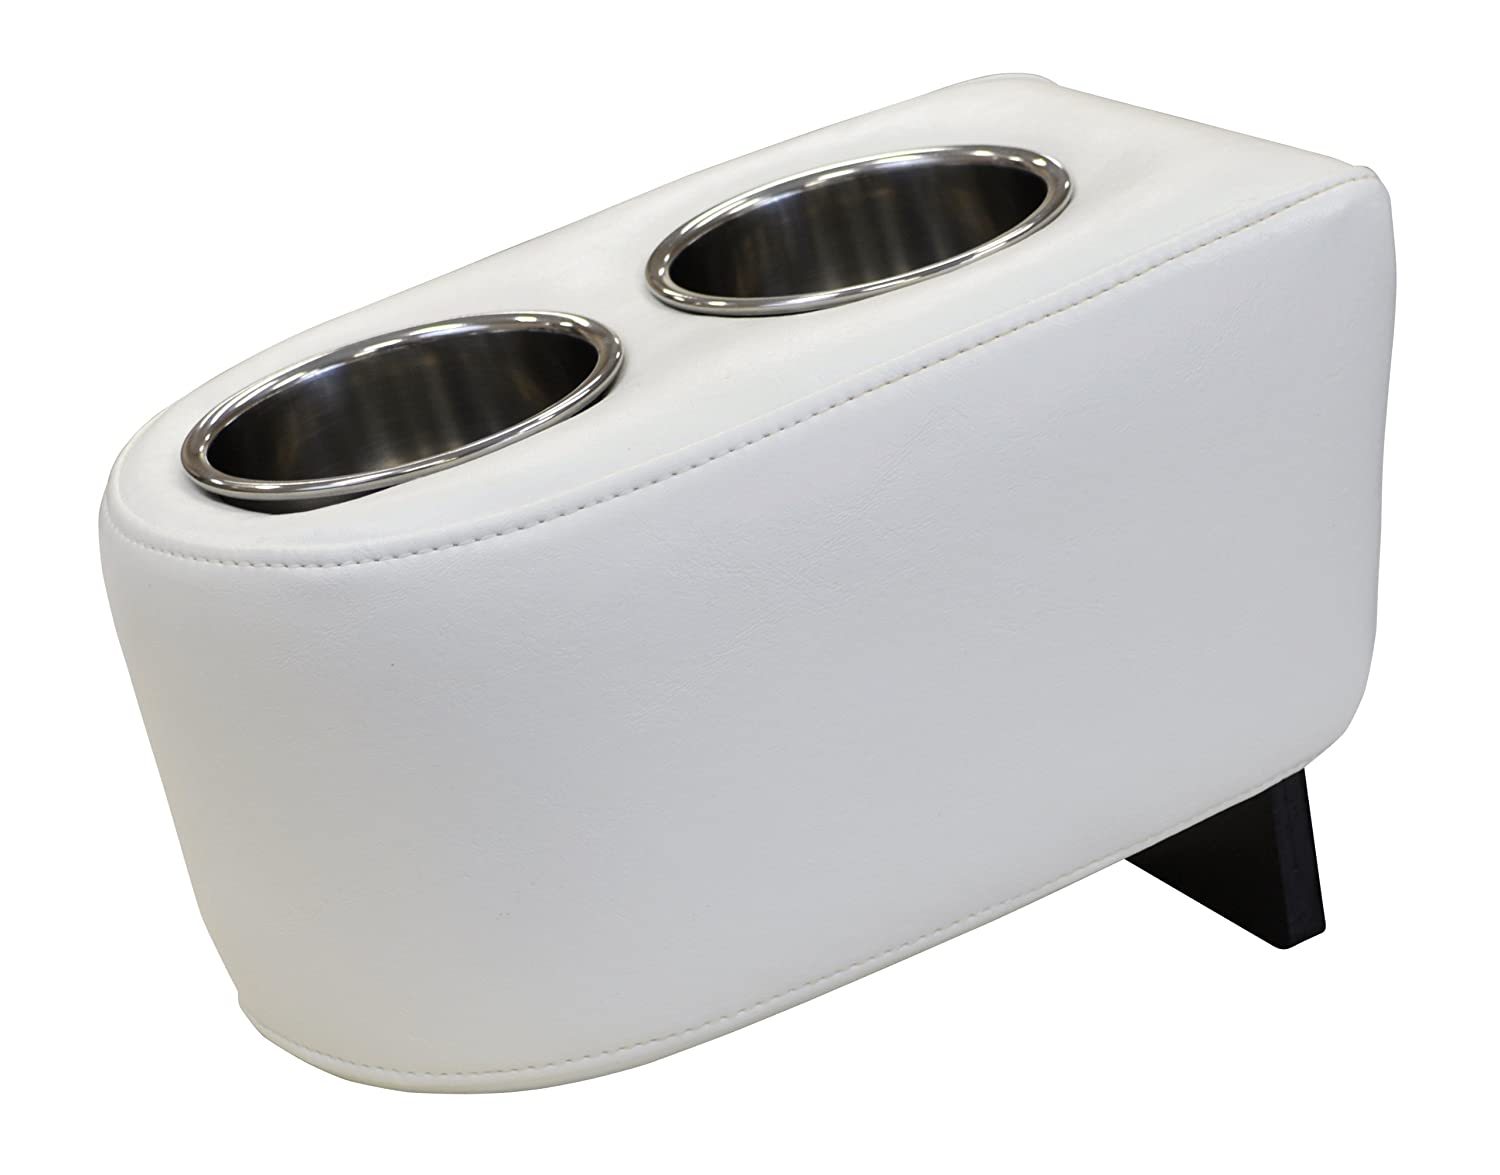 Wise Stainless Steel Dual Pontoon Cup Holder